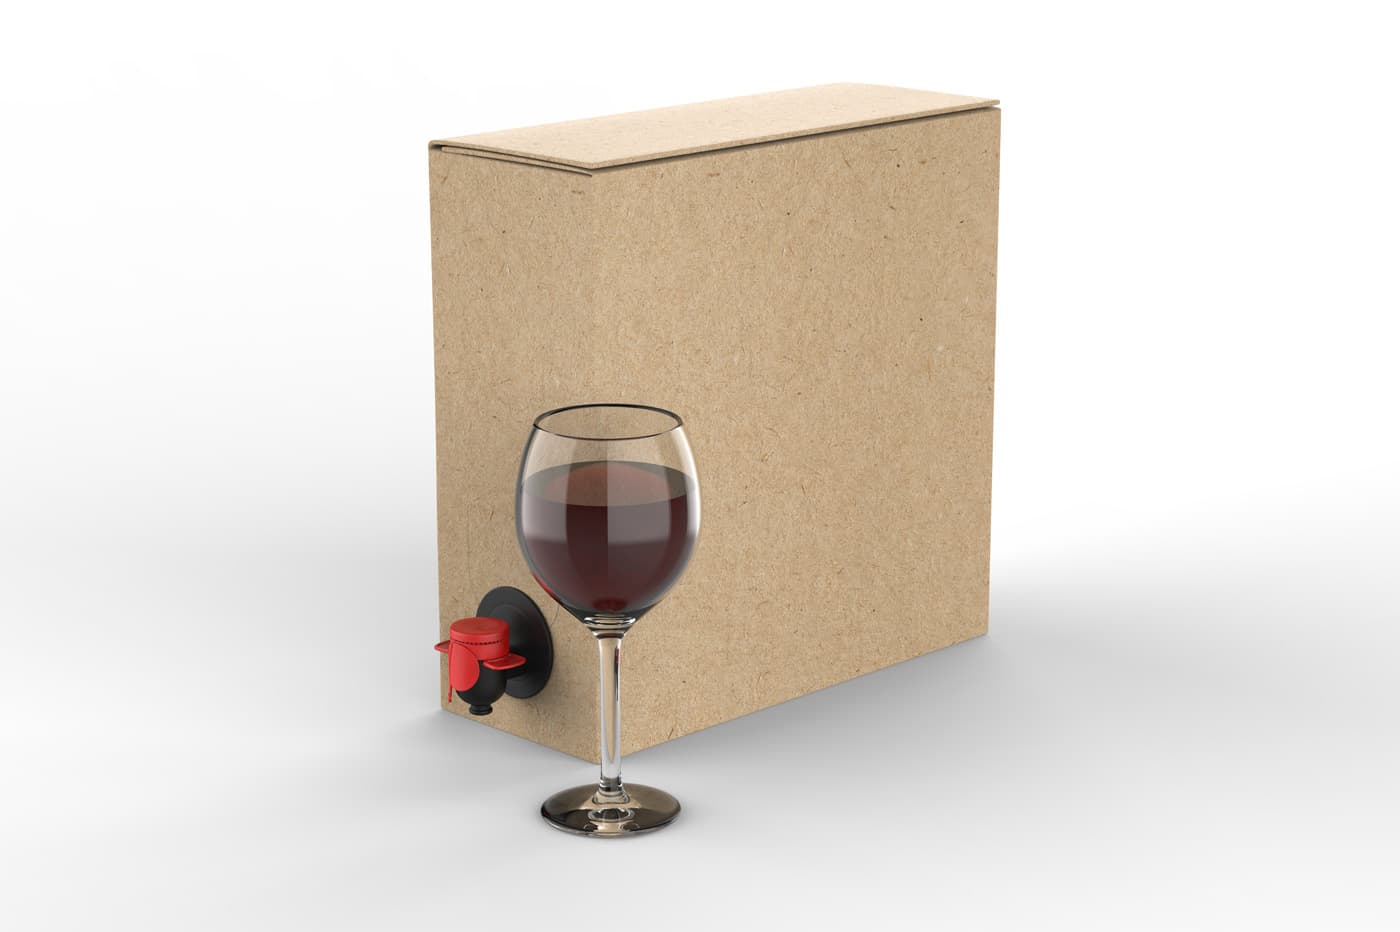 Venta de vino bag in box para restaurantes